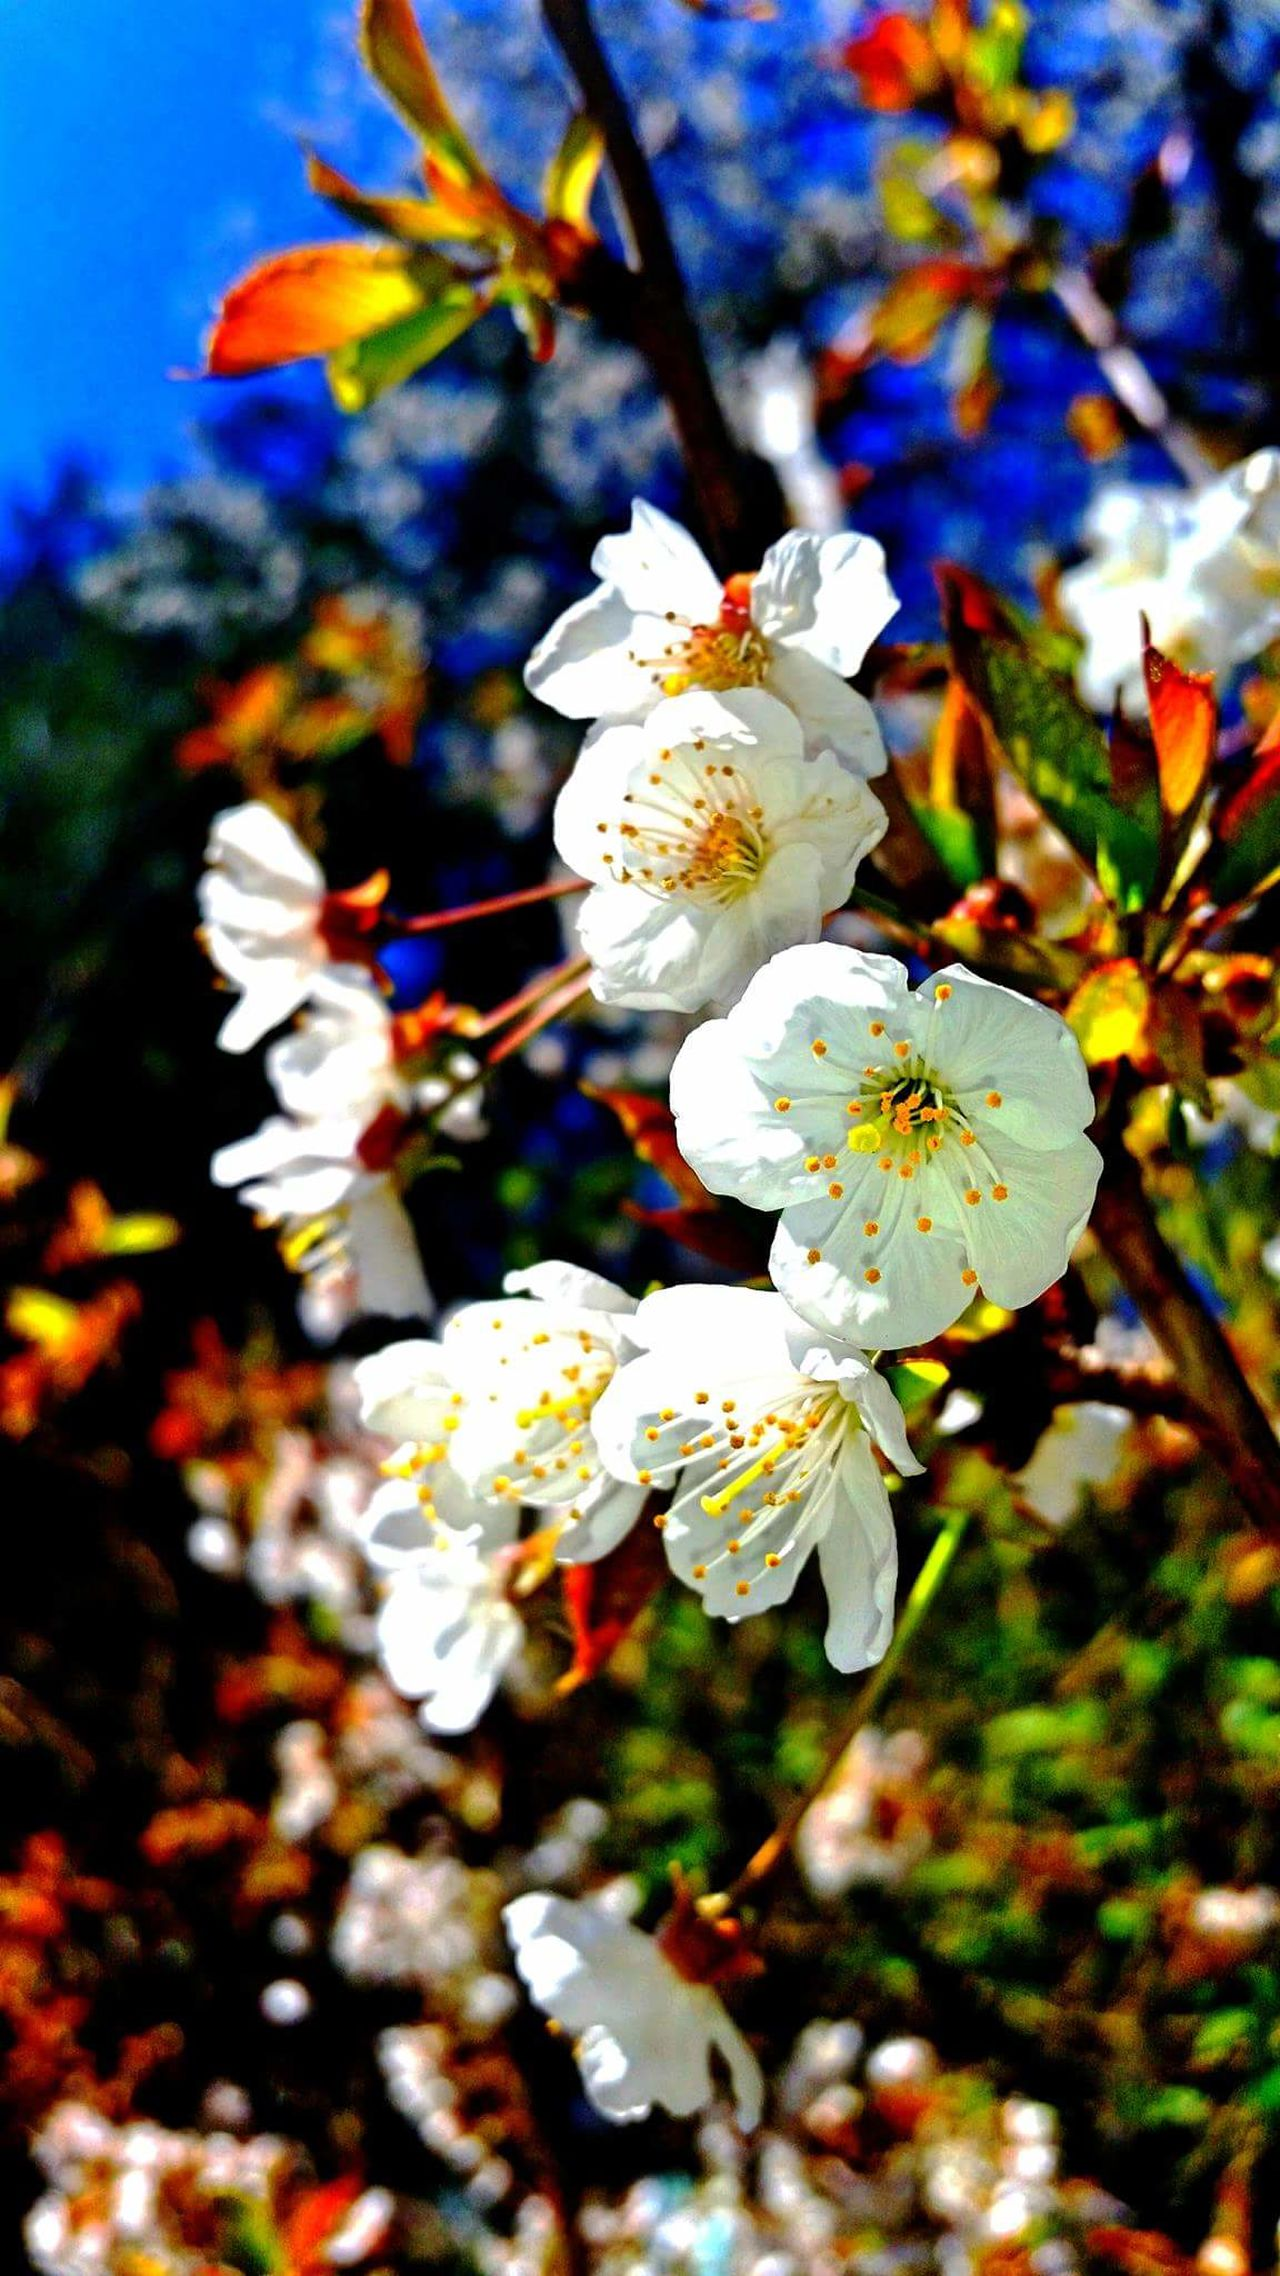 EpicShotPhotography Getty X EyeEmSpring 2016 Spring Blossoms Grants For Photographers Springtime ,march Showcase Getty & Eyeem Getty Images Washington State EyeEmxGettyImages EyeEm Gallery Q13spring Wild & Pure Nature_collection Landscape_collection EyeEmNatureLover King5spring Buyme Getty X EyeEm Images Gettyimagesinstagramgrant EyeEm Nature Lover Gettyimagesgallery NaturesNirvana NorthwestnaturetrekGettyimage Nationalgeographic Epic Shot Photography